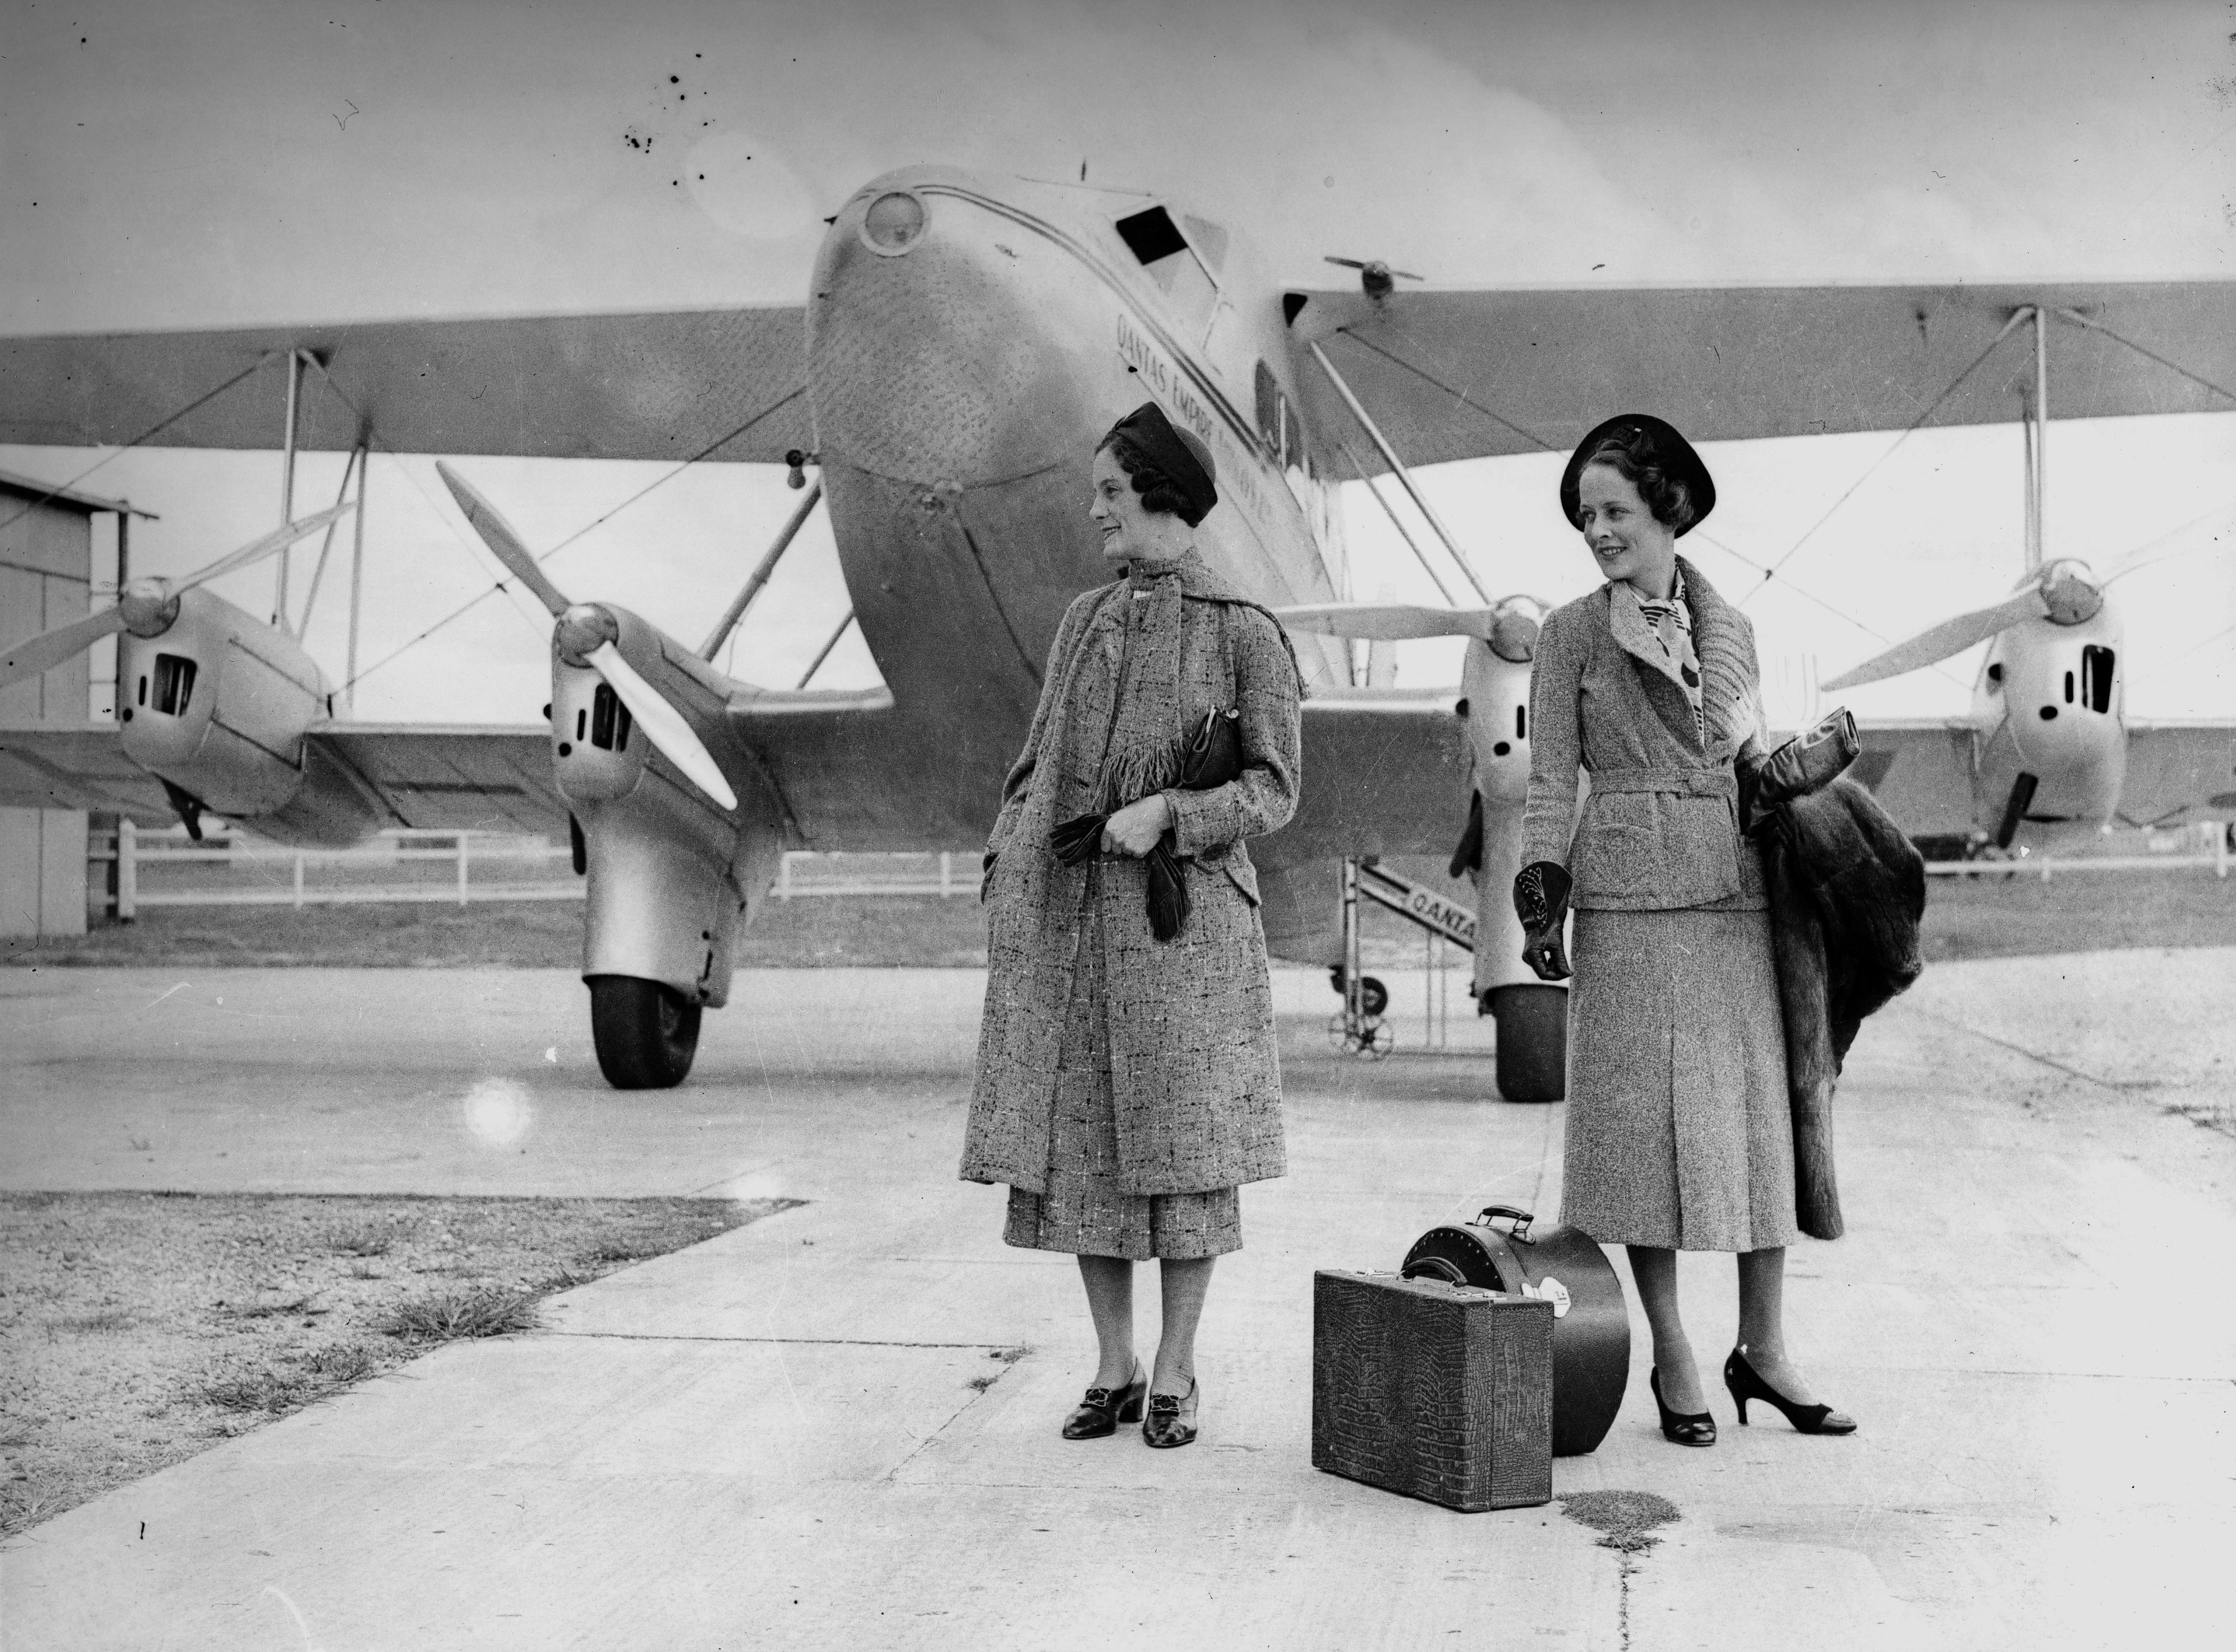 Models posing for a fashion shoot in front of a Qantas biplane 1936